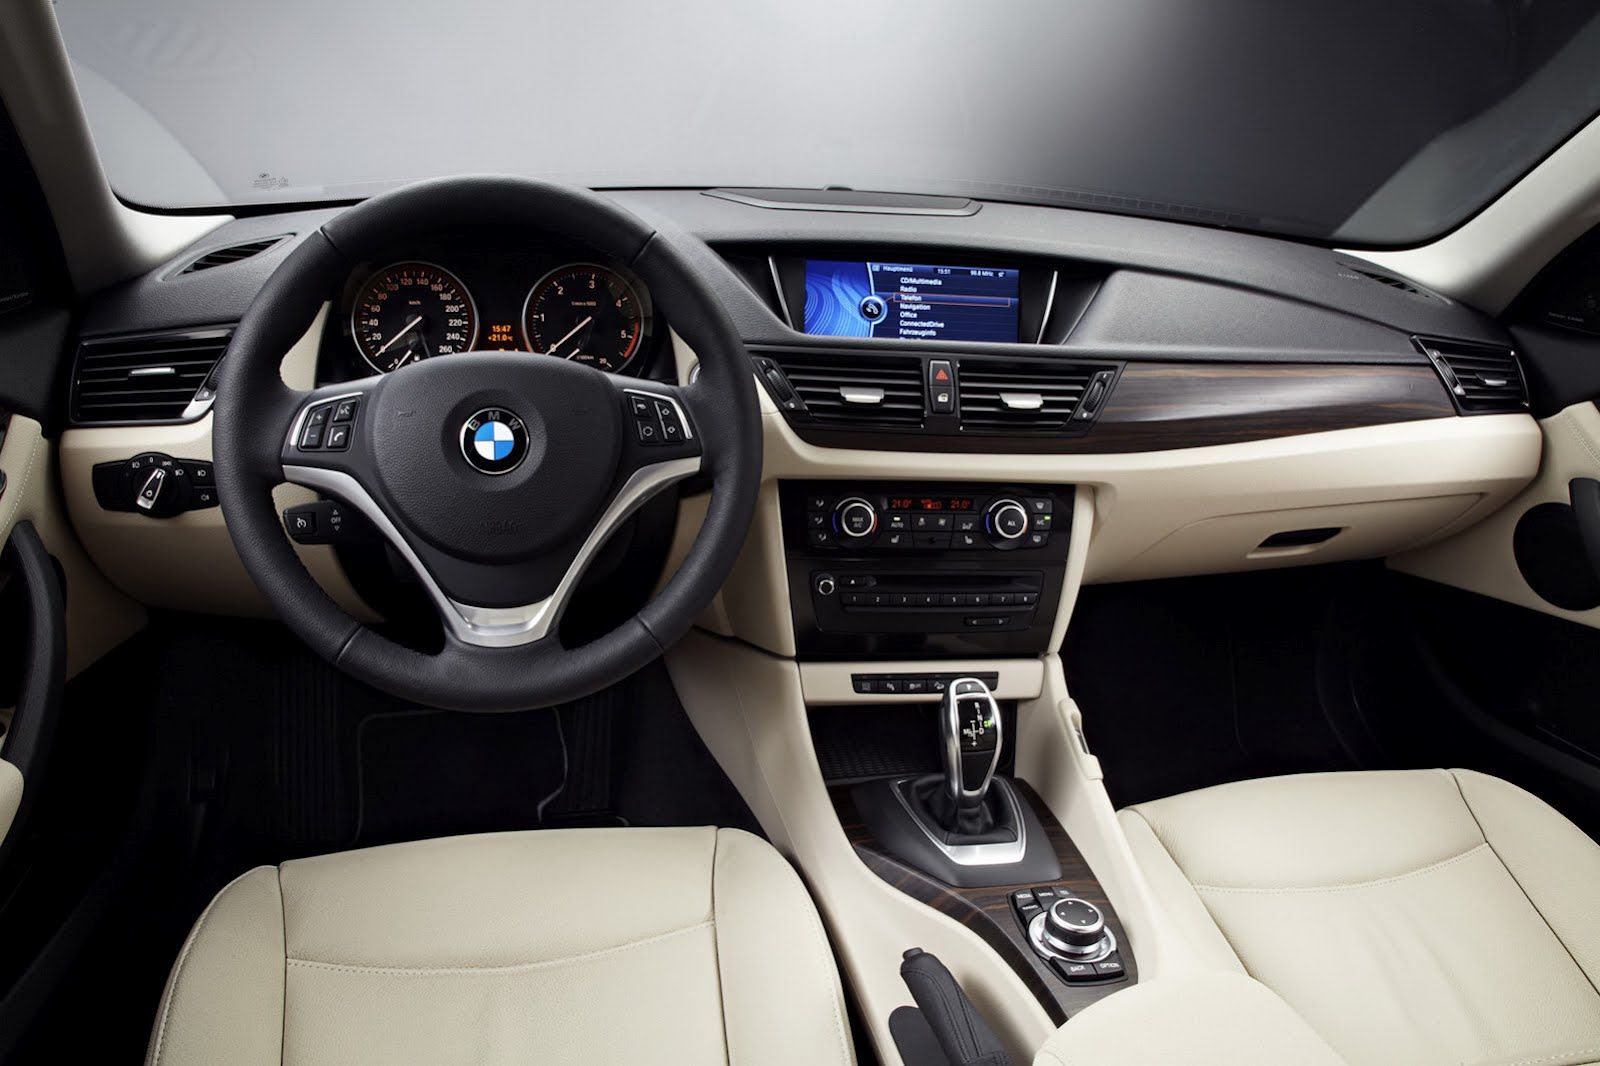 Bmw X1 Interior Black And Suede Clean And Perfect With The New